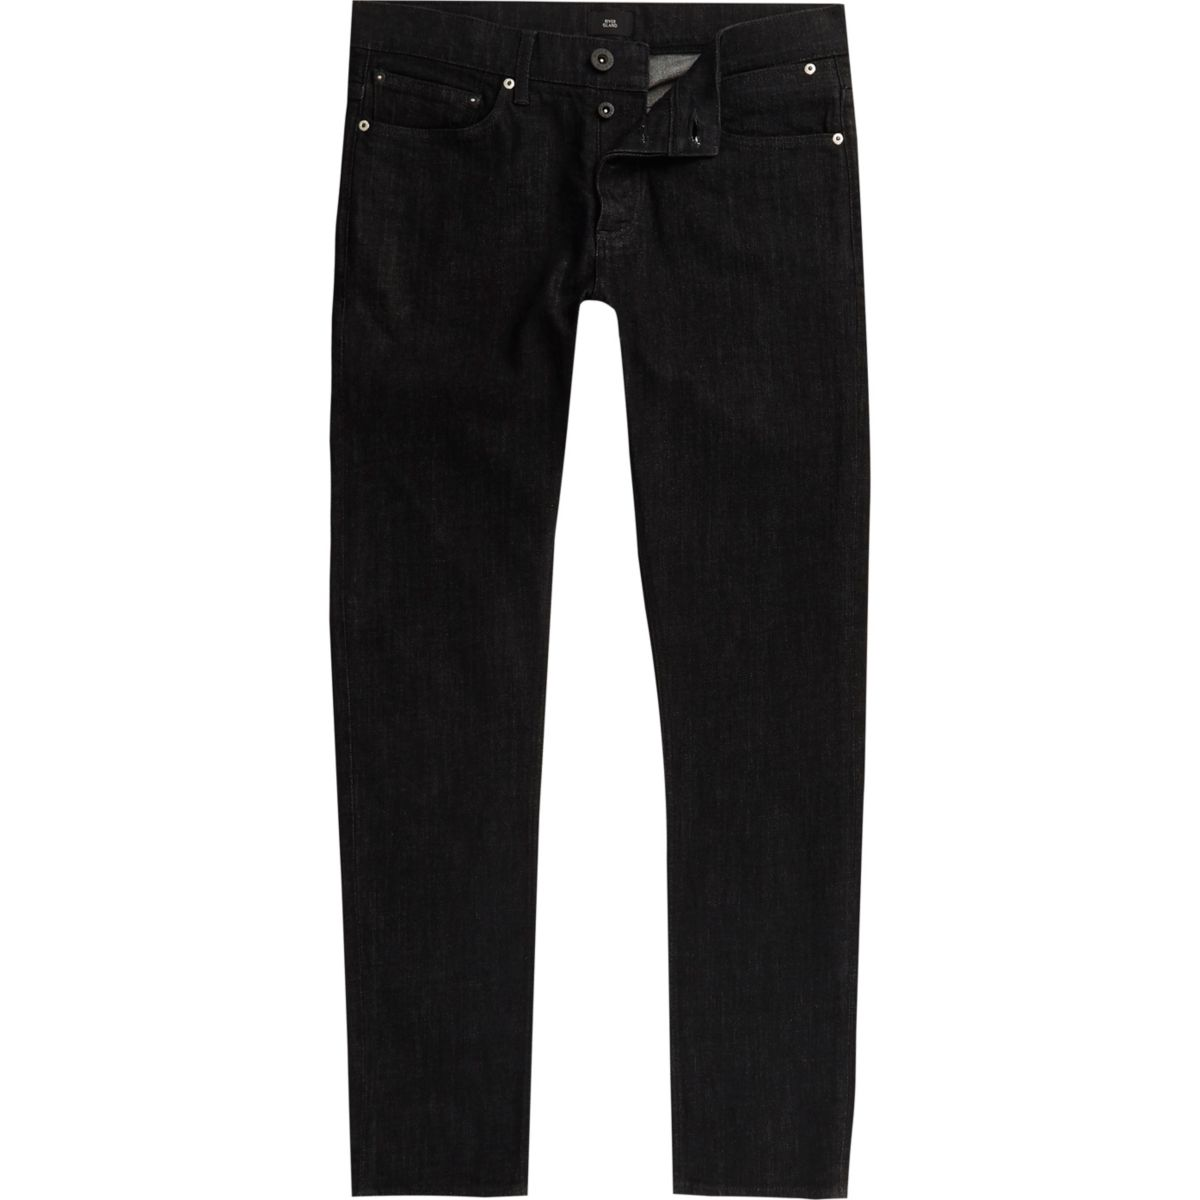 Washed black Sid skinny jeans